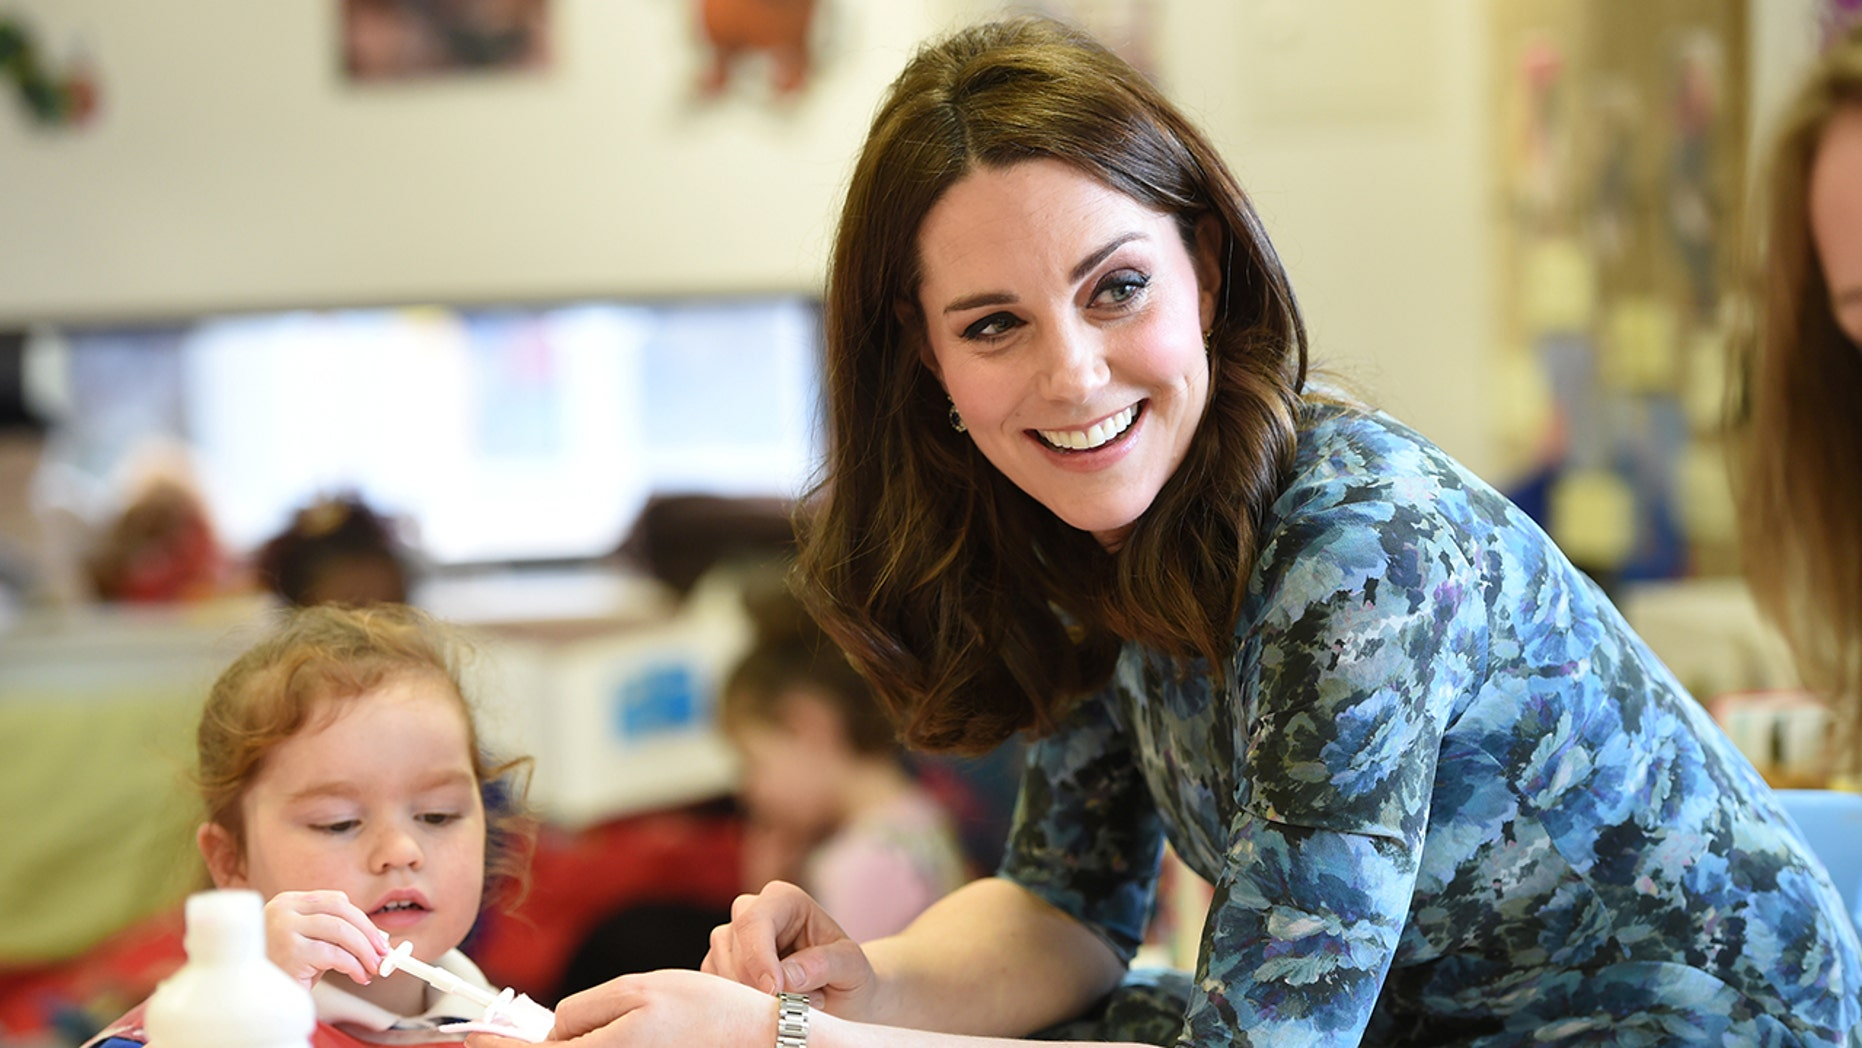 The Duchess of Cambridge has stepped out with a shorter 'do for a sweet reason.